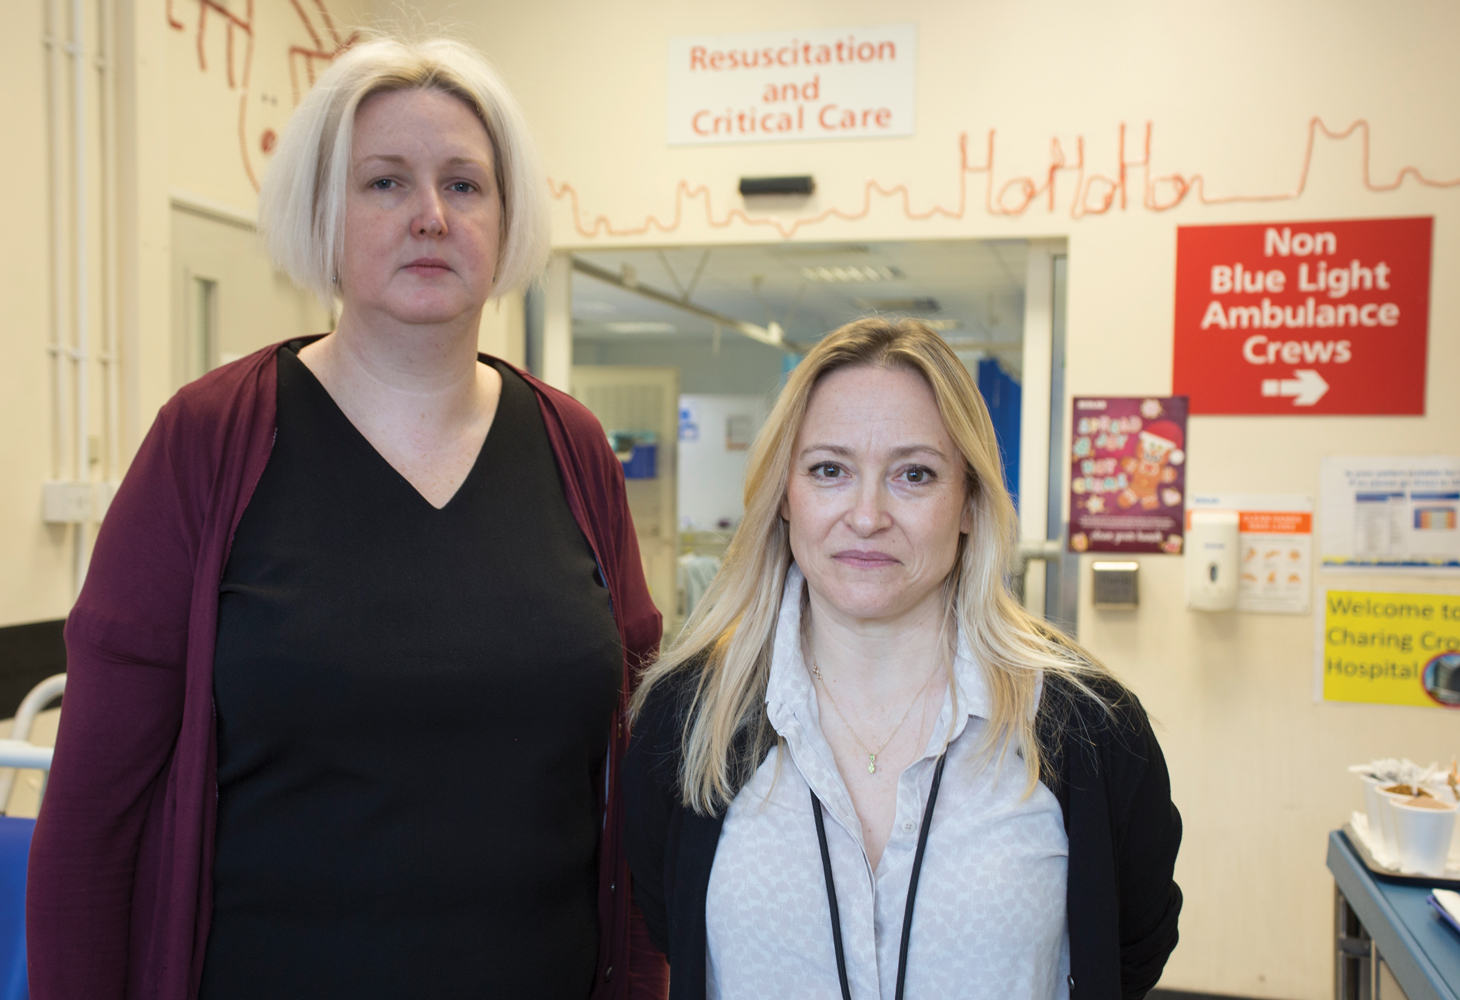 Gemma Harper (left) a mental health support worker, and Dr Emma Schofield (right) a staff grade in emergency medicine